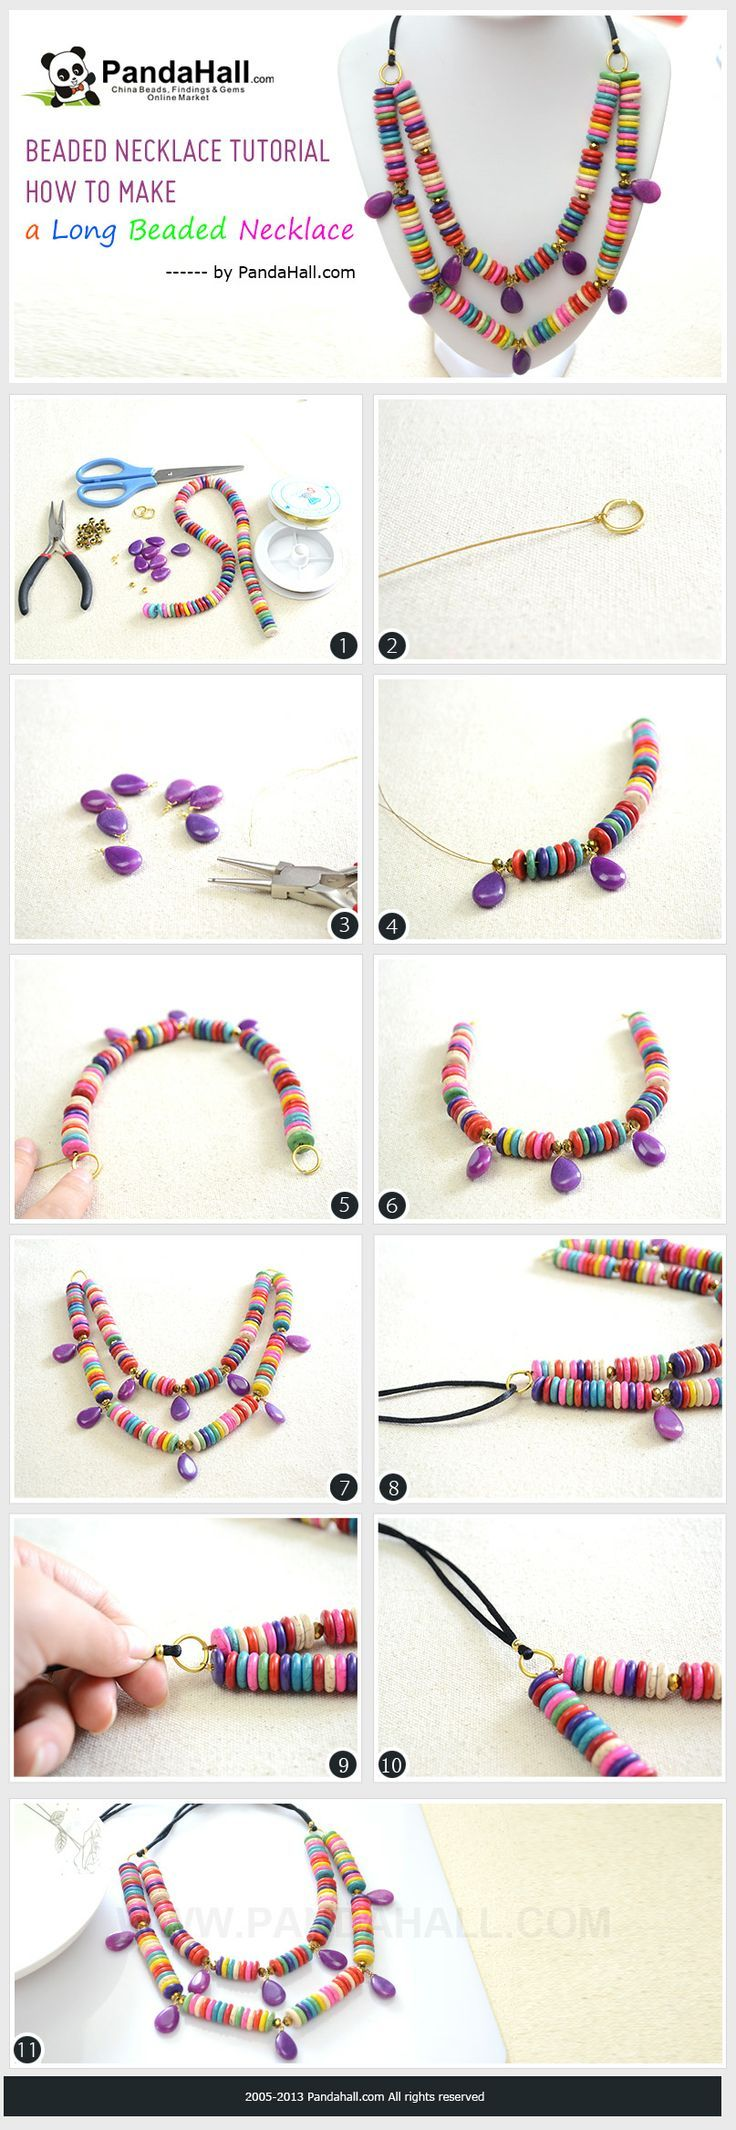 The 73 best diy necklace images on pinterest diy collares diy beaded necklace tutorial howto make a long turquoise bead necklace in 3 steps mozeypictures Images